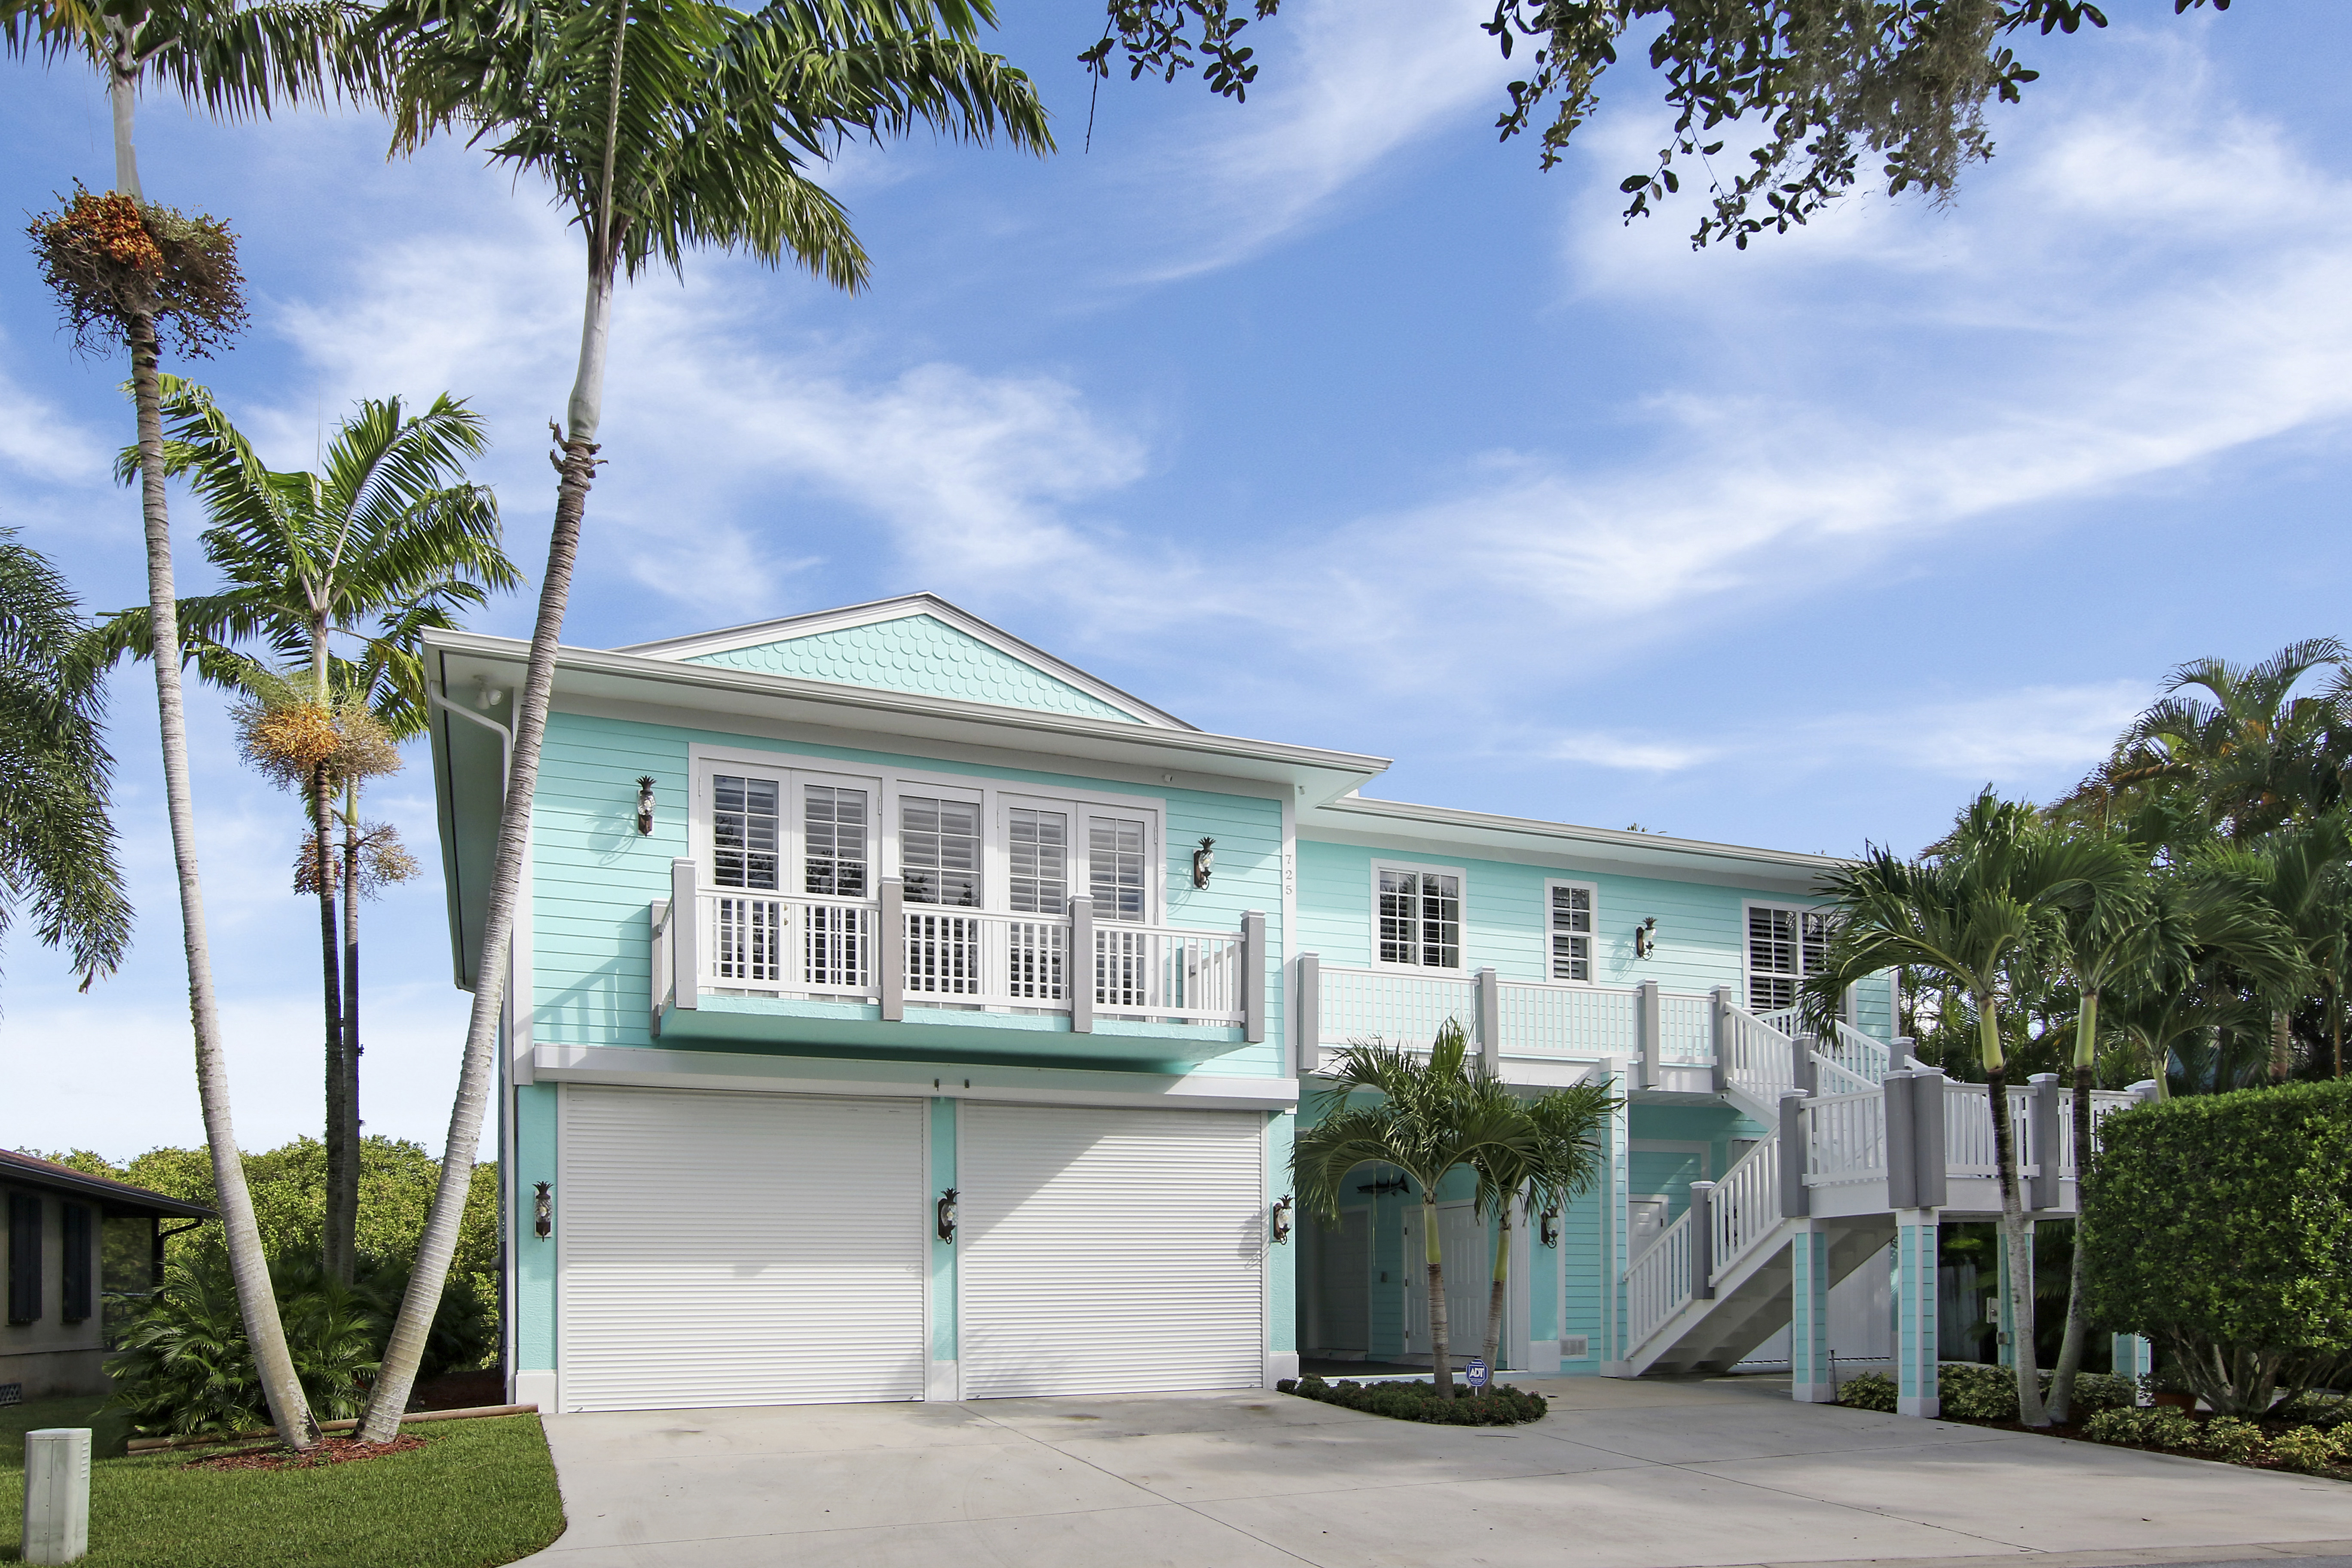 HOT New Listing! Stunning Key West Home with Ocean Access!